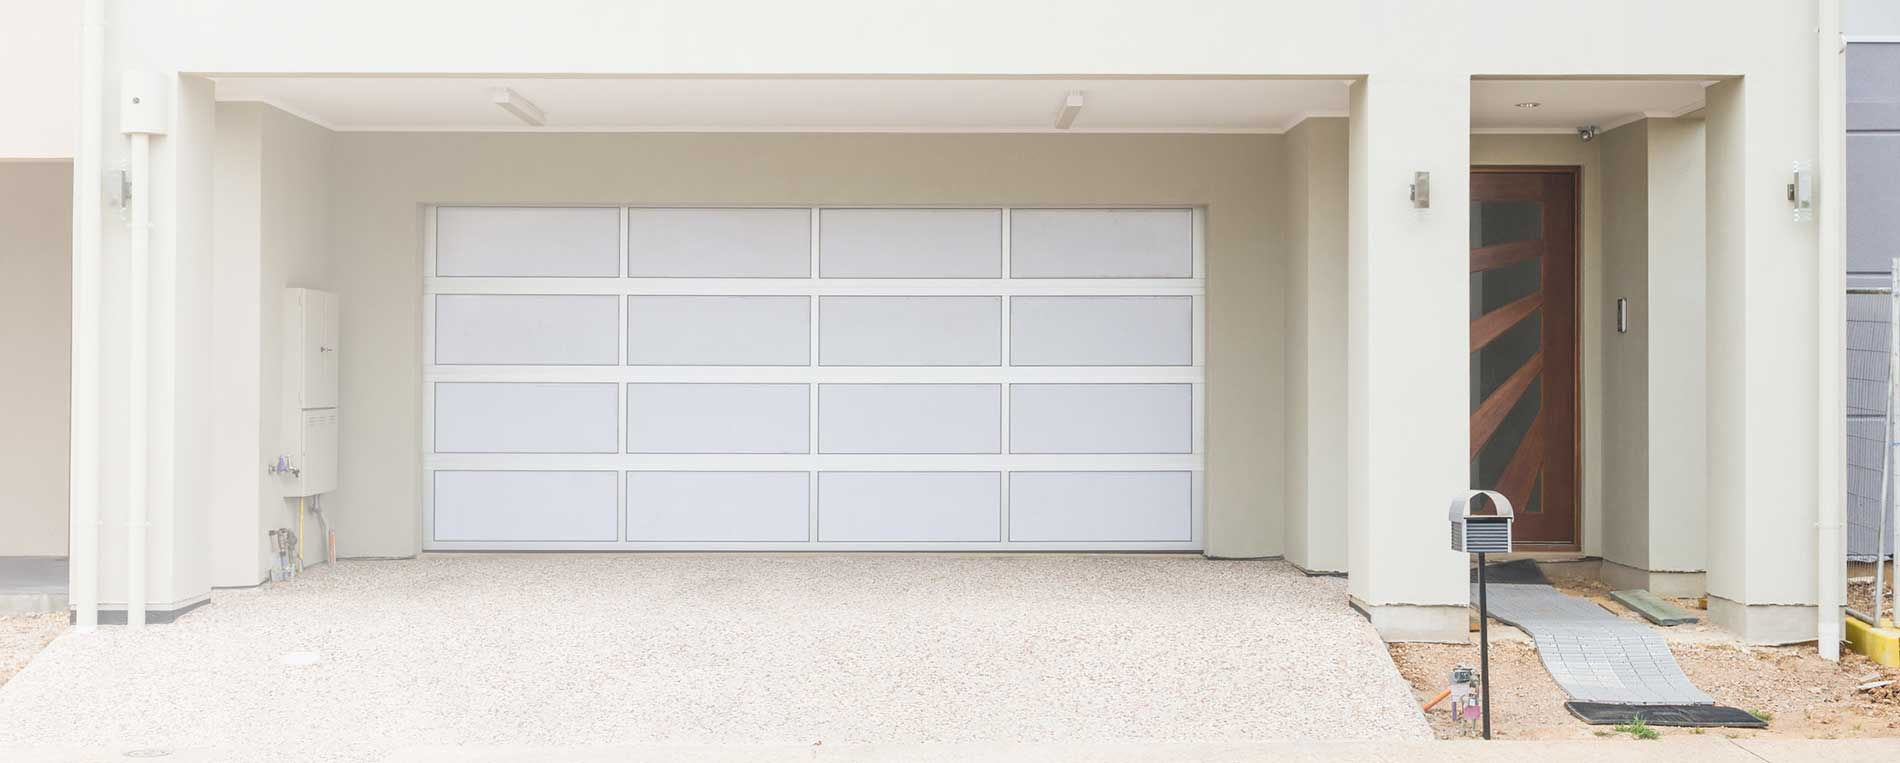 call repairs brick nj installations door phoenix toms the river doors garage professionals